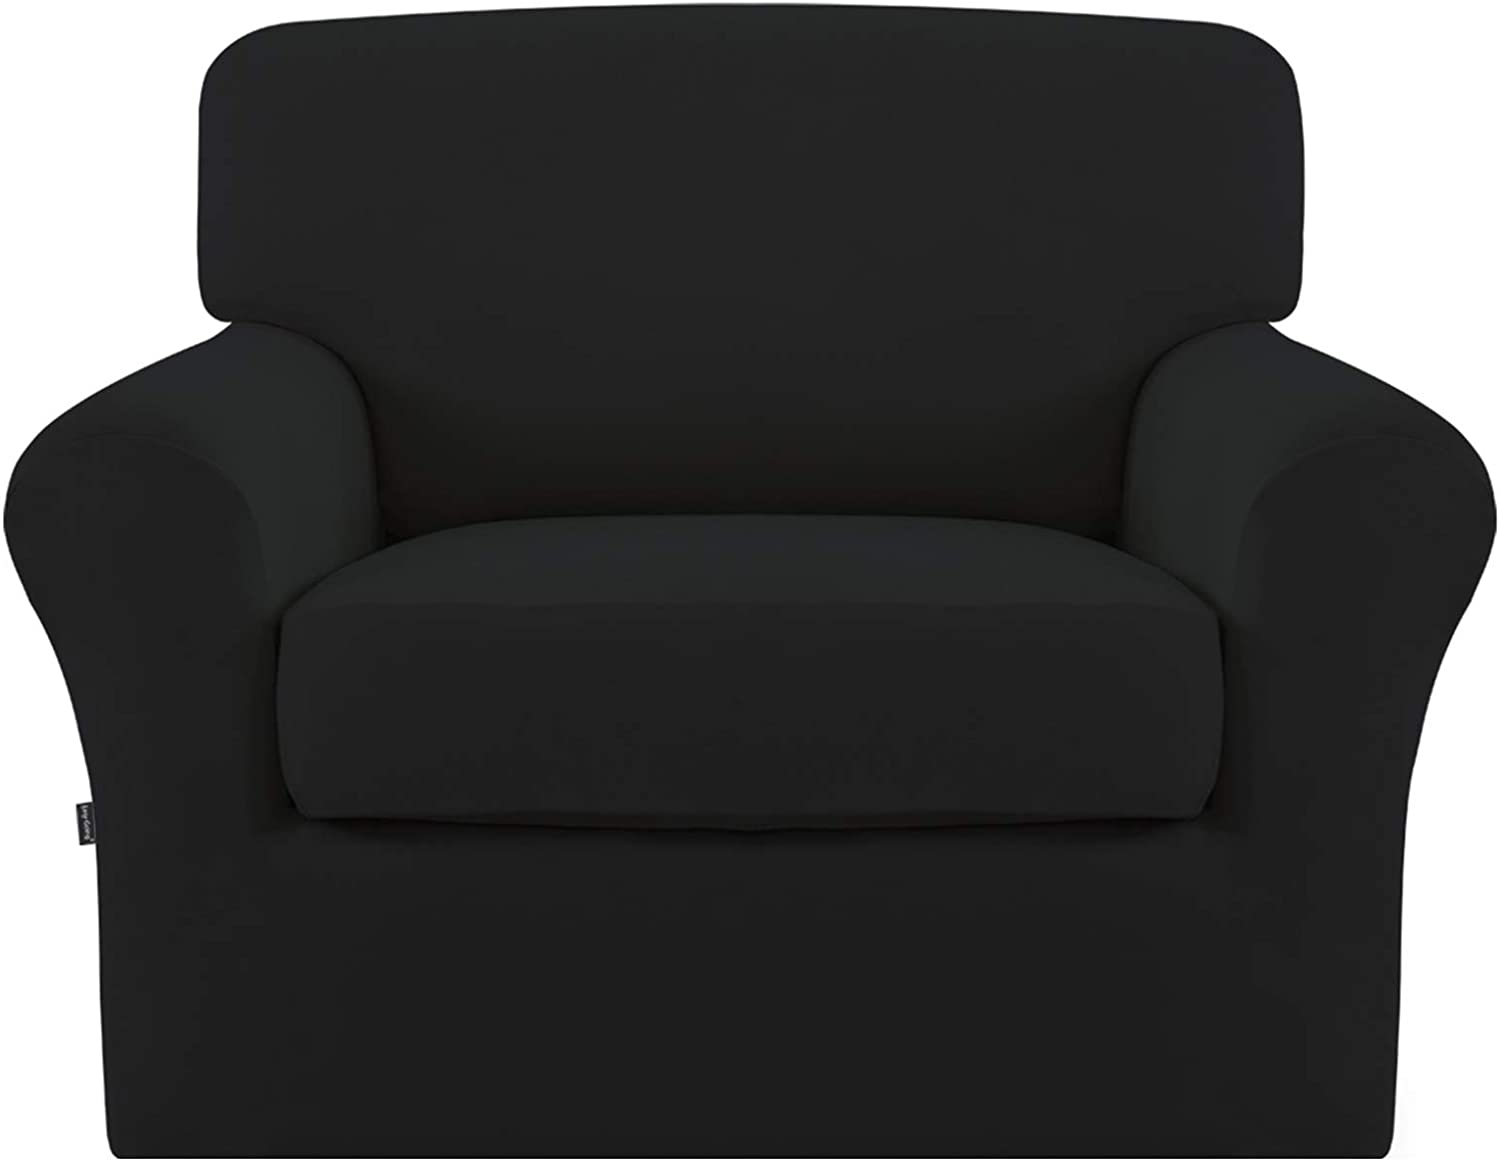 Easy-Going 2 Pieces Microfiber Stretch Couch Slipcover – Spandex Soft Fitted Sofa Couch Cover, Washable Furniture Protector with Elastic Bottom for Kids,Pet (Chair,Black)